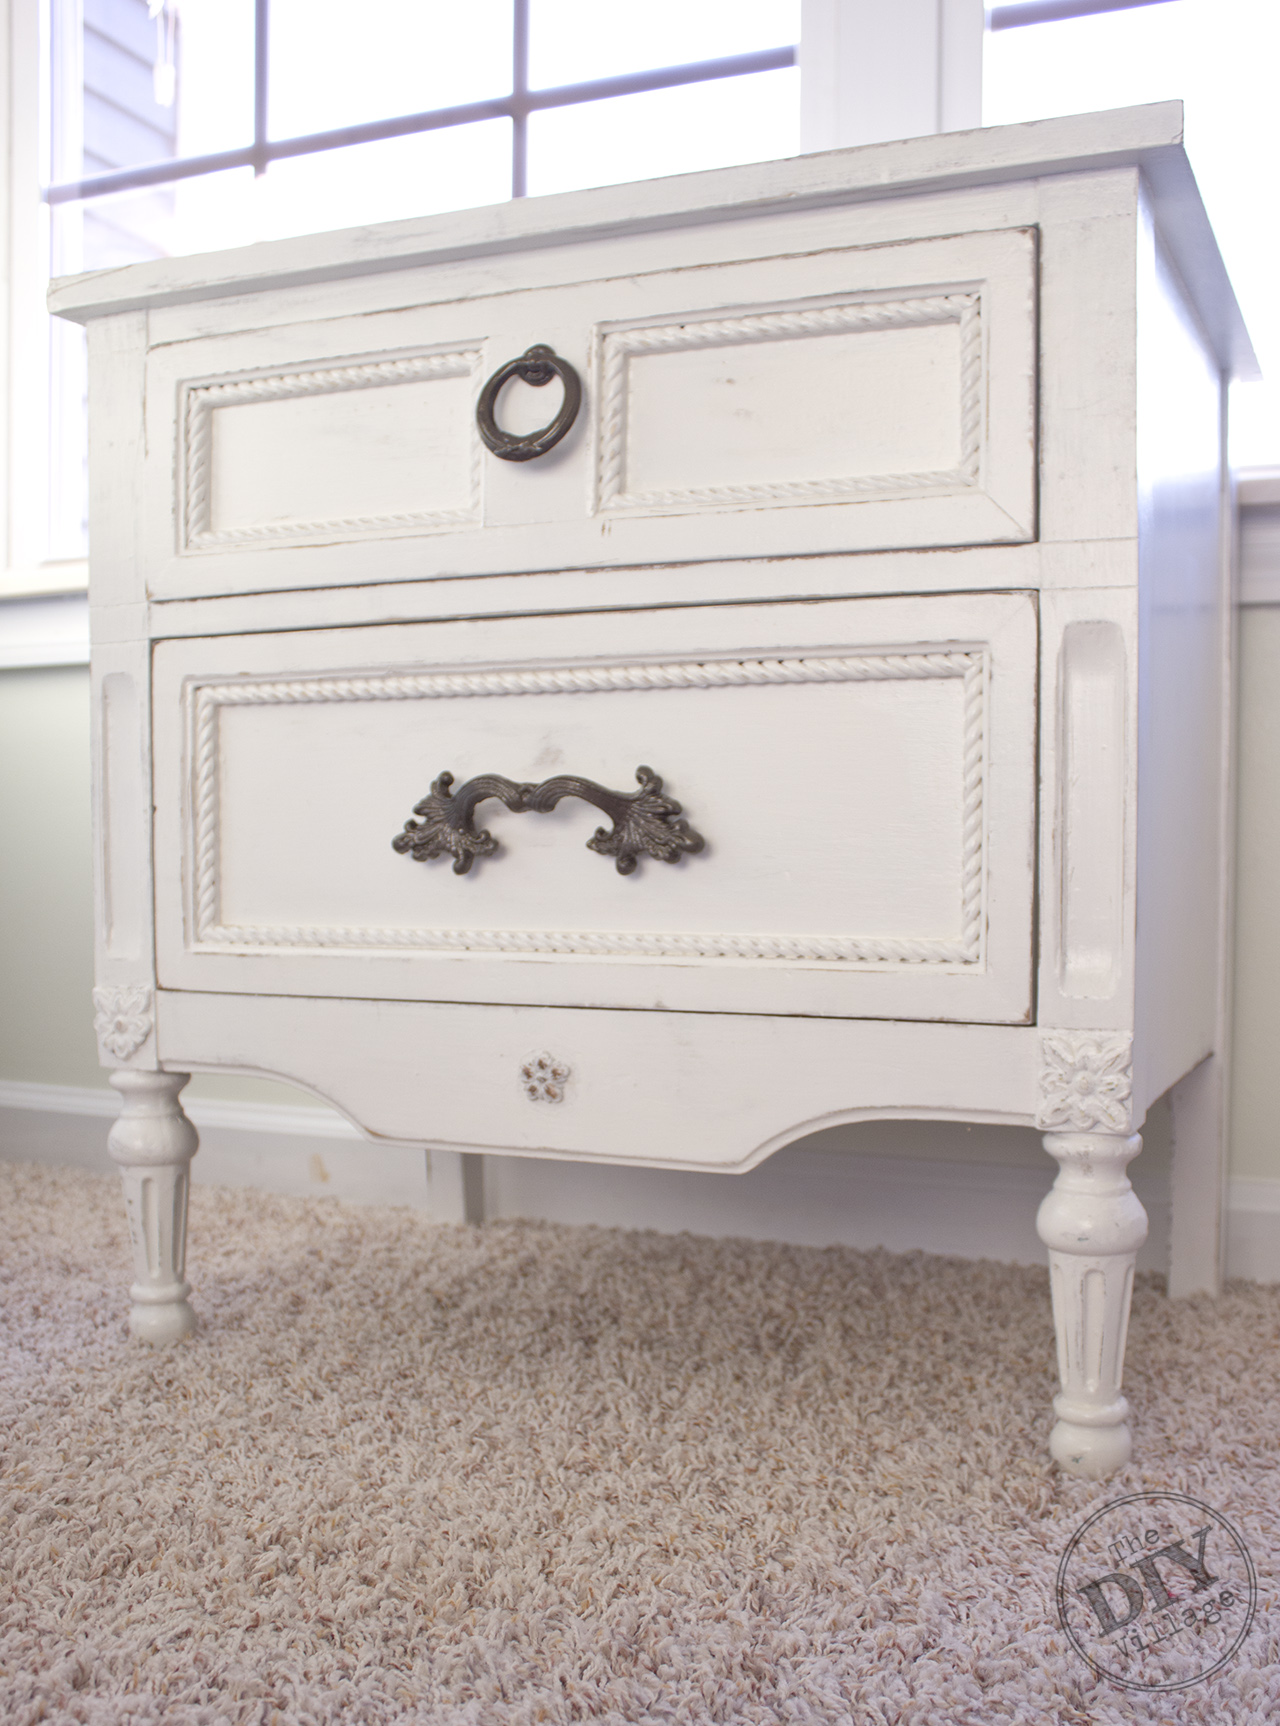 How to repair molding on furniture